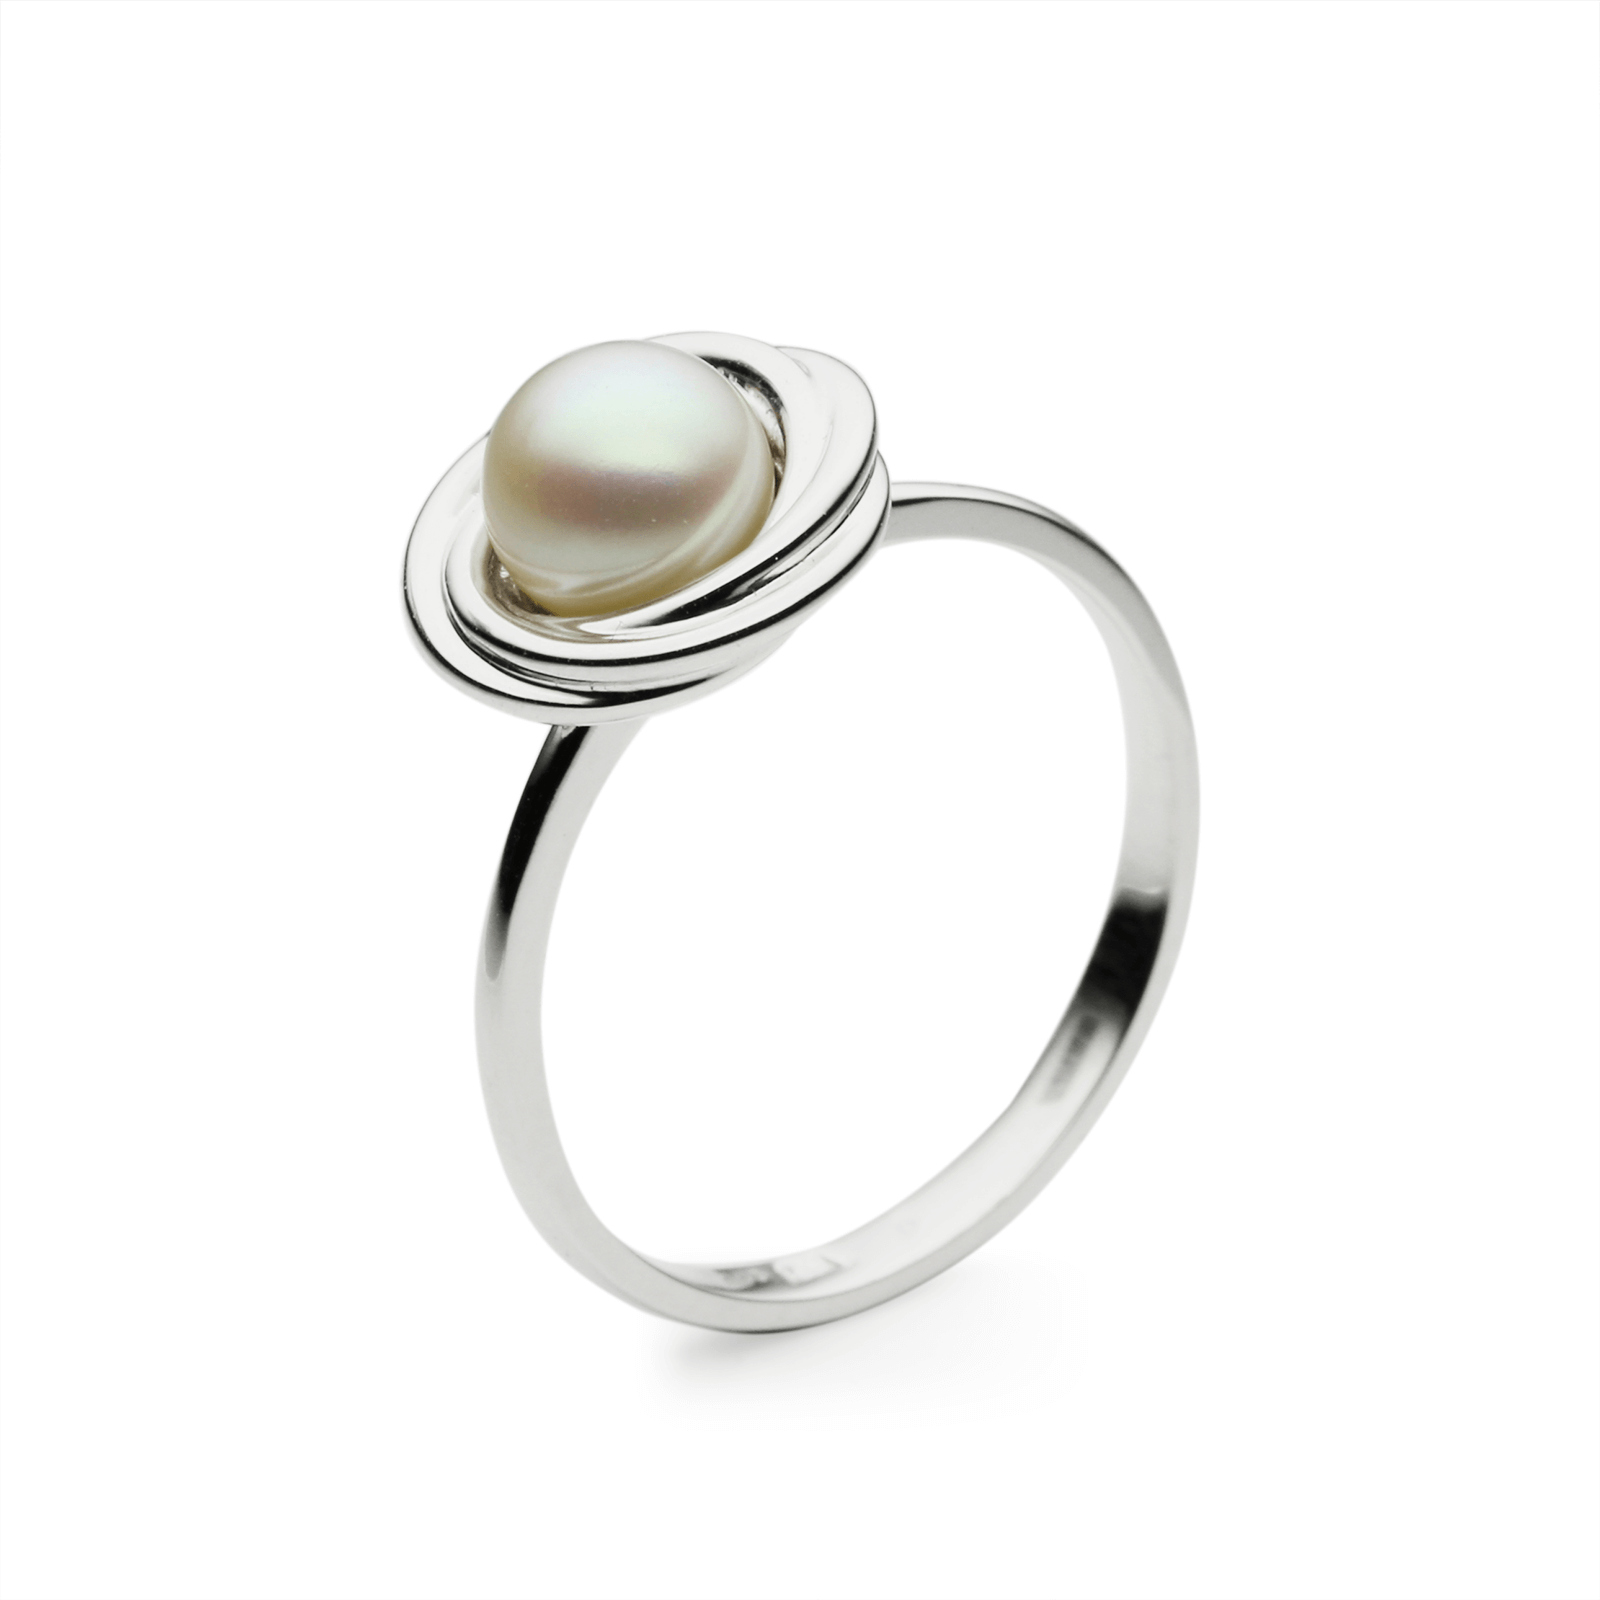 freshwater pearl6 - 6,5 mm - 1x